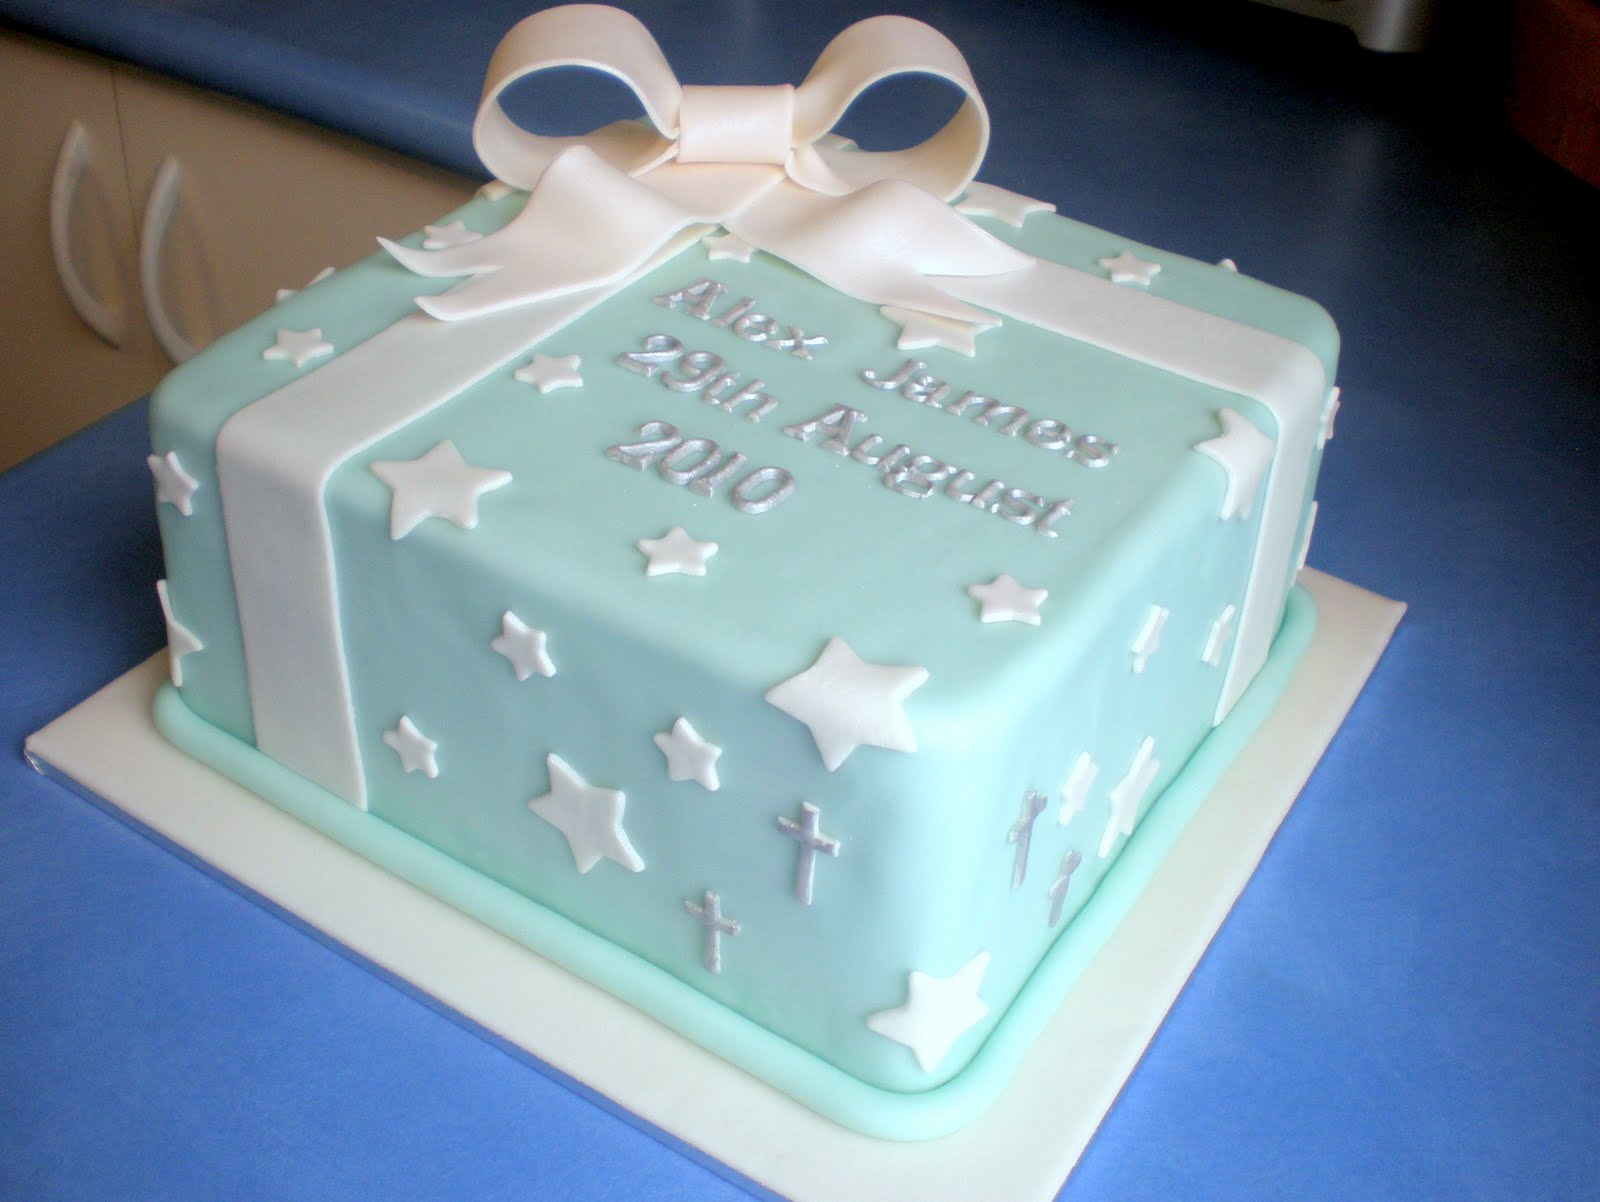 Christening Cake Designs For Baby Boy : Boy Baptism Cakes on Pinterest Baptism Cakes ...